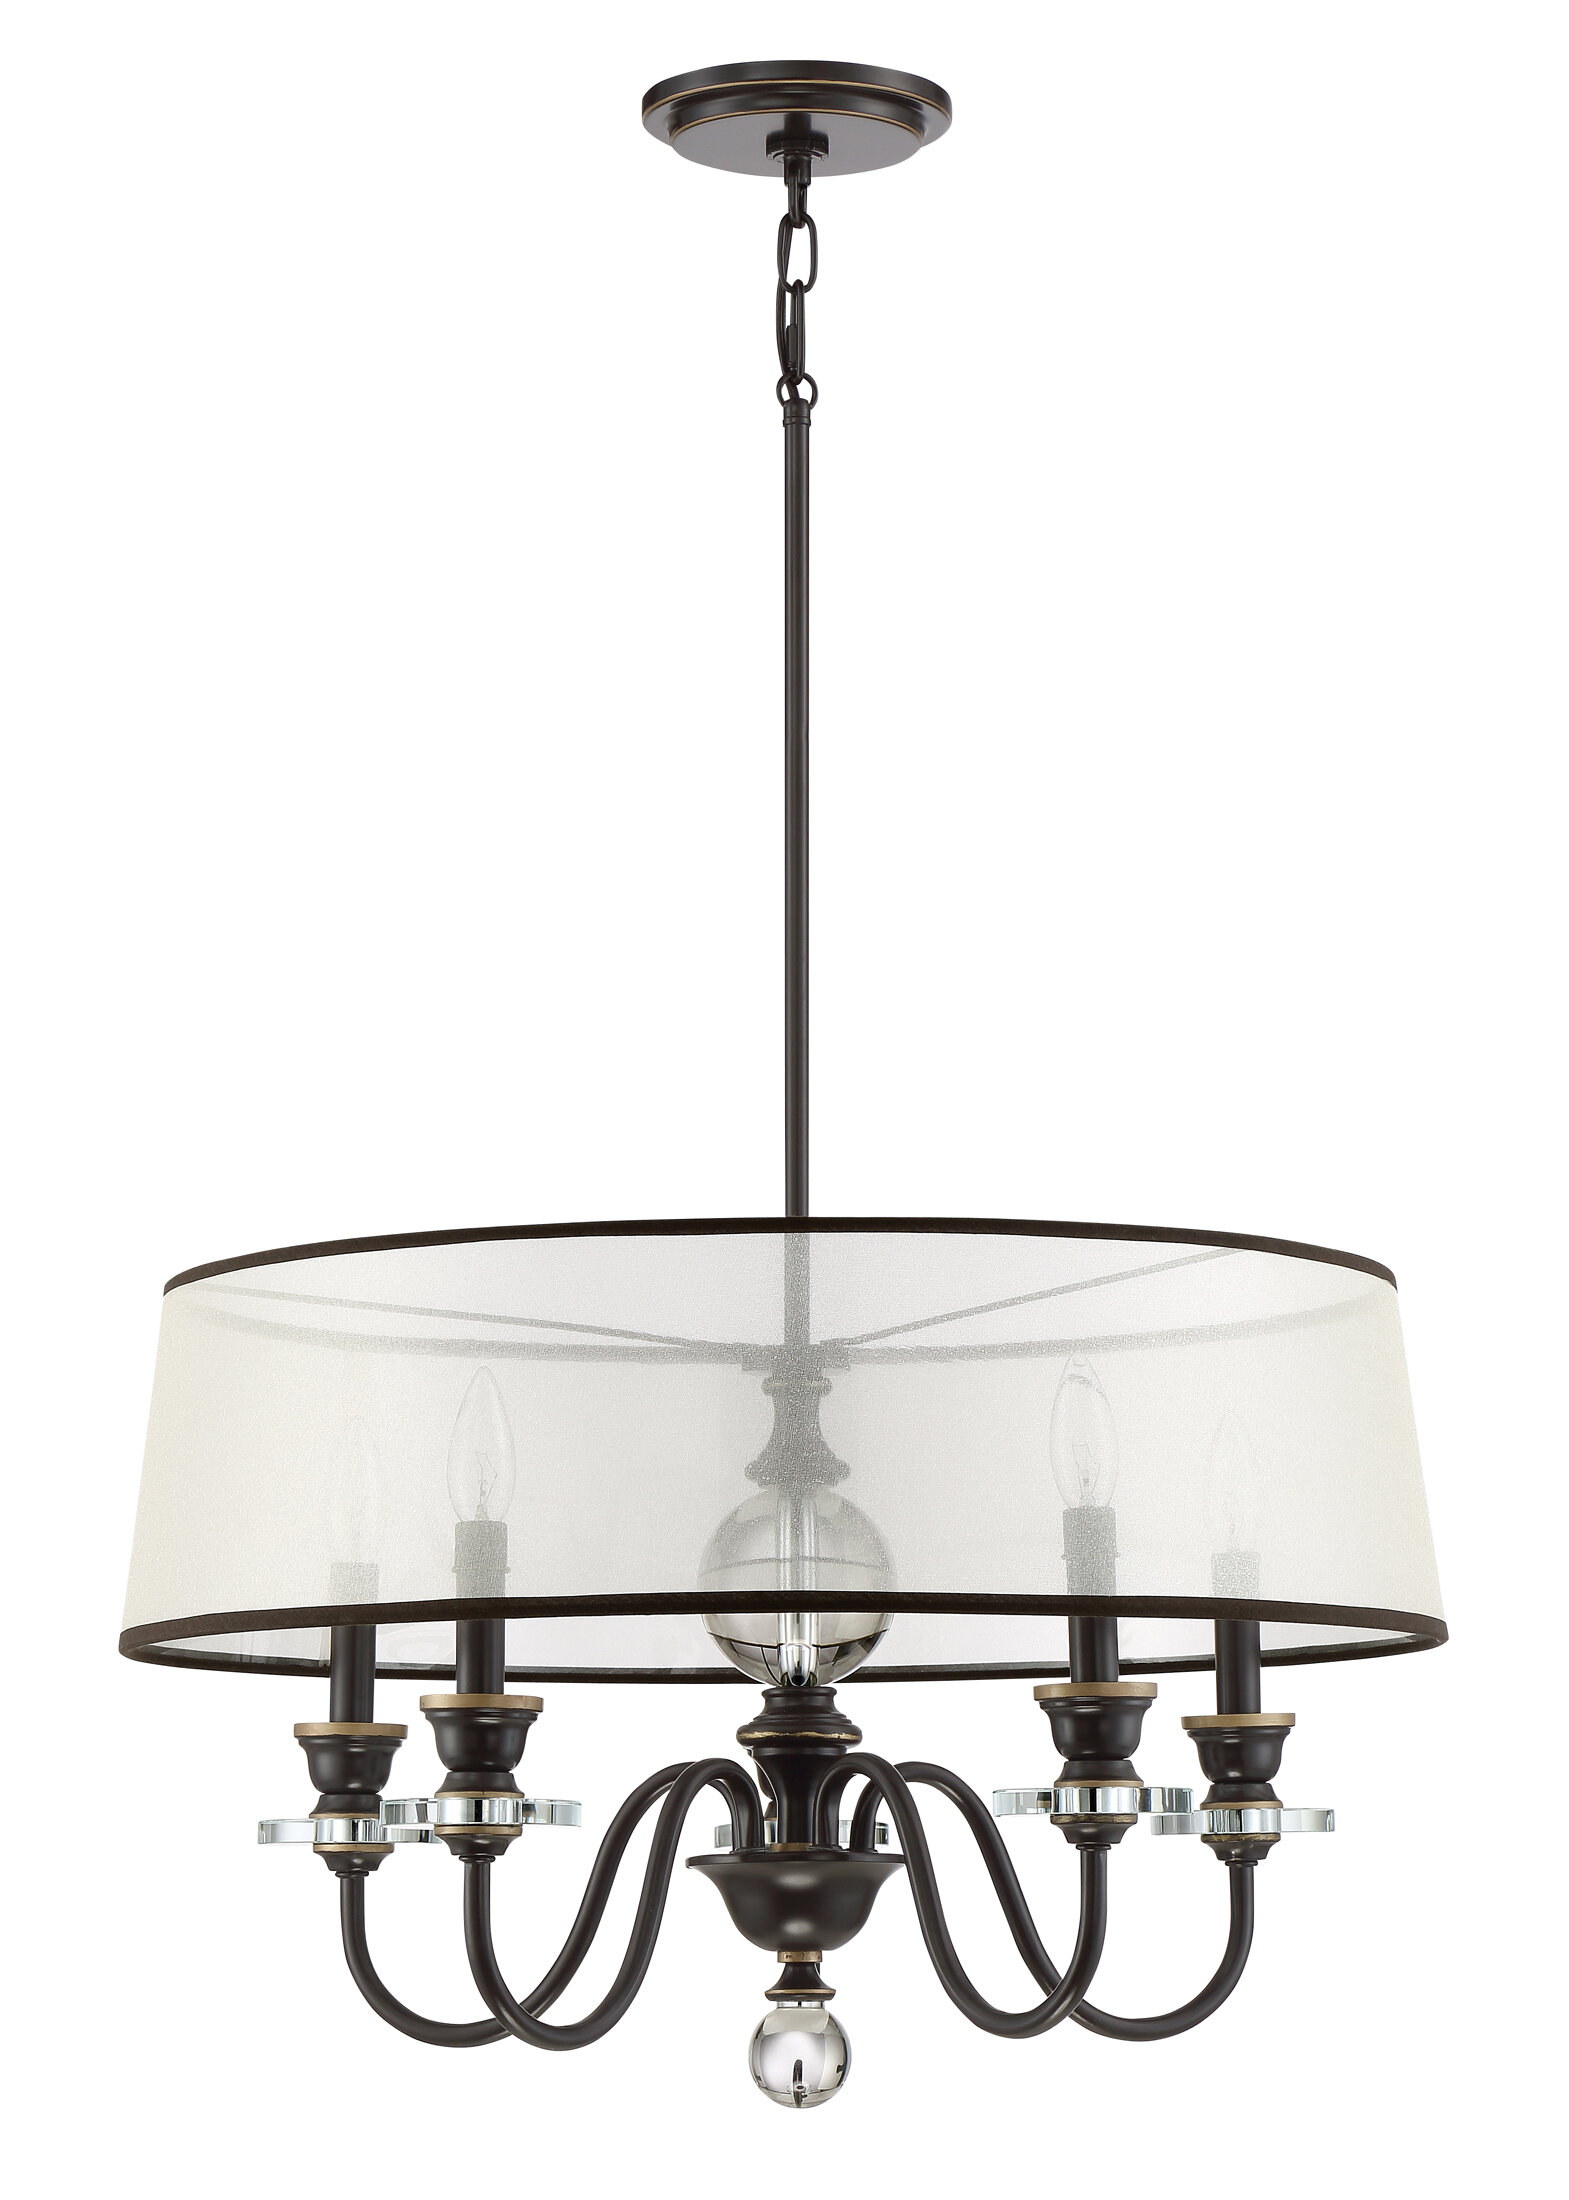 Darby Home Co Ellisurg 5 Light Drum Chandelier & Reviews